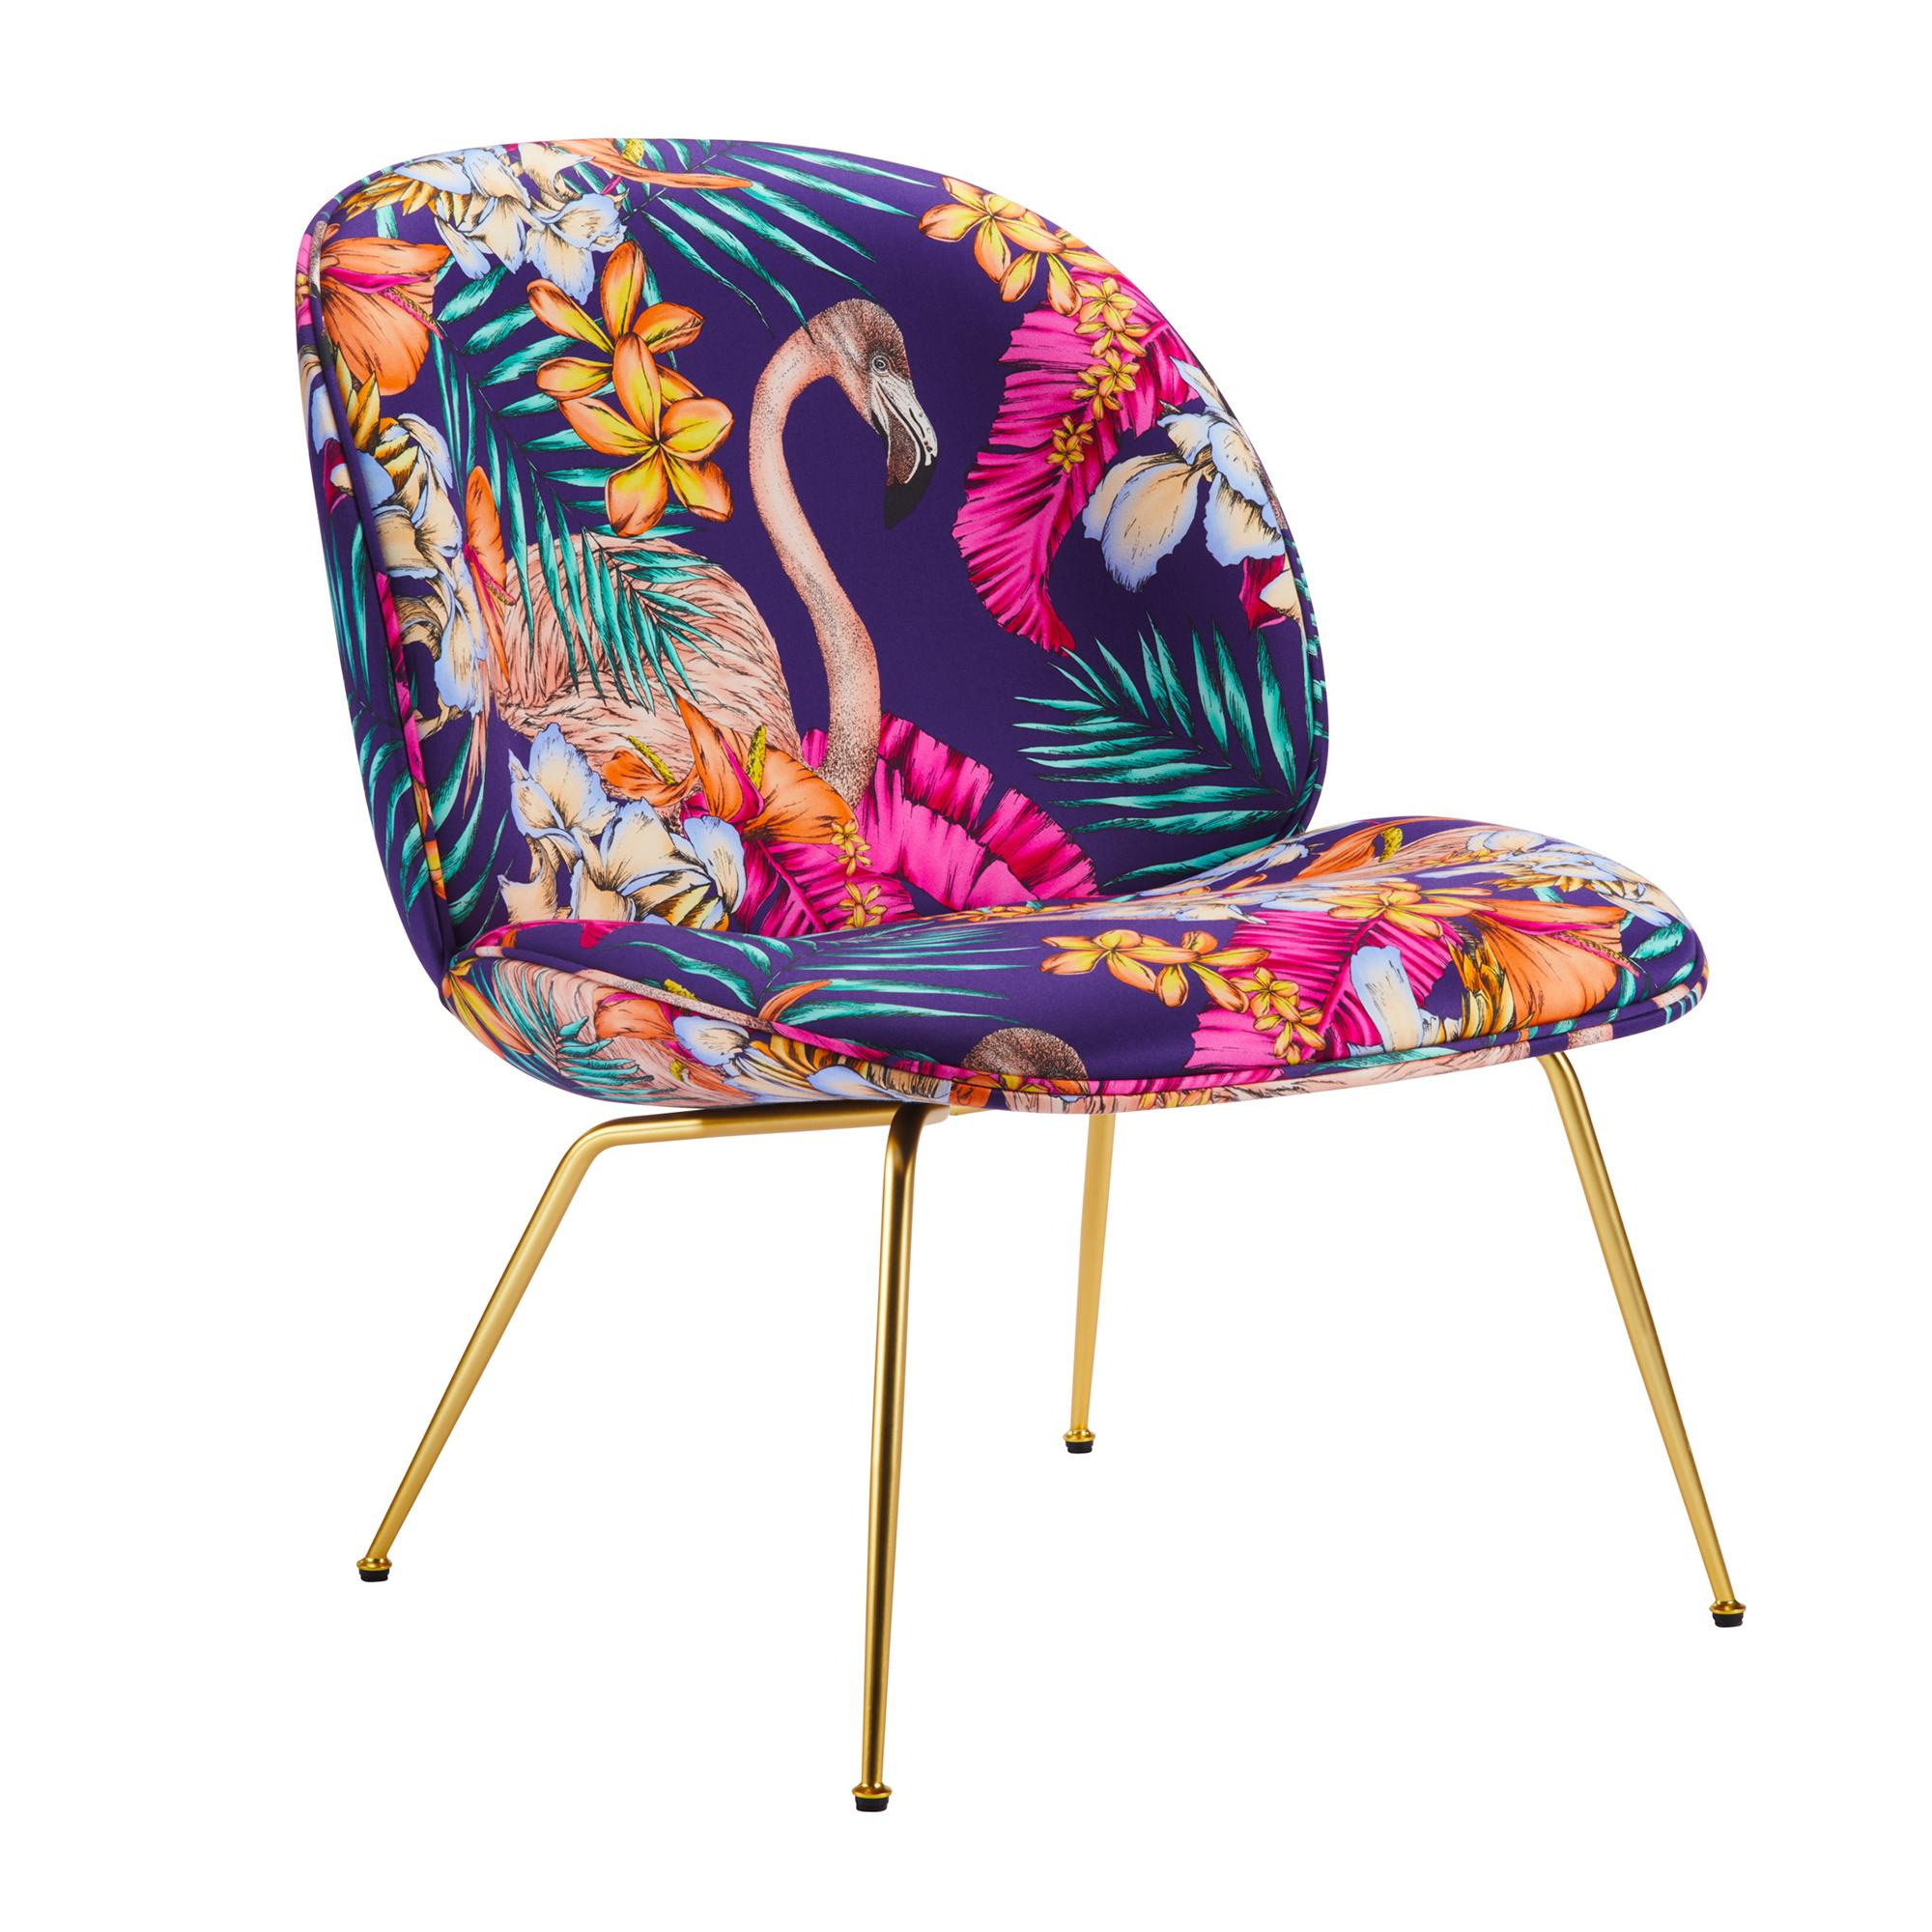 Lounge Sessel Stoff Gubi Beetle Lounge Sessel Stoff Gestell Messing Lila Stoff Flamingo Club F6790 06 Bxhxt 63x80x72cm Gestell Messing